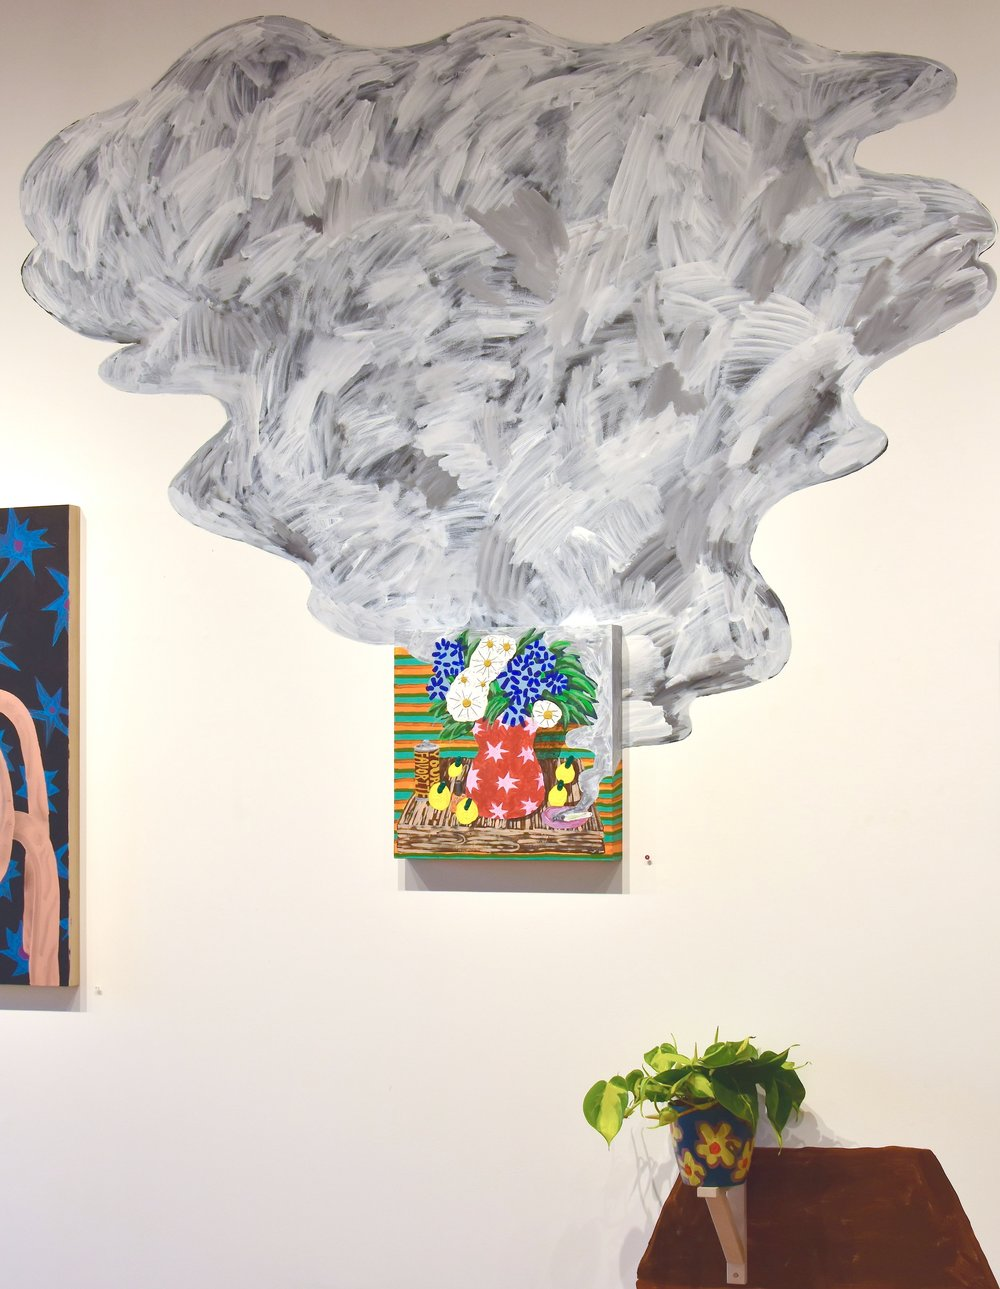 Interview with artist Kellen Chasuk. - Following the opening of her solo show at Stephanie Chefas Projects,Plastic Flowers. Learn more about her art experiences, the content or her work, the choices she made in displaying it, her creative practice and what she has coming up.